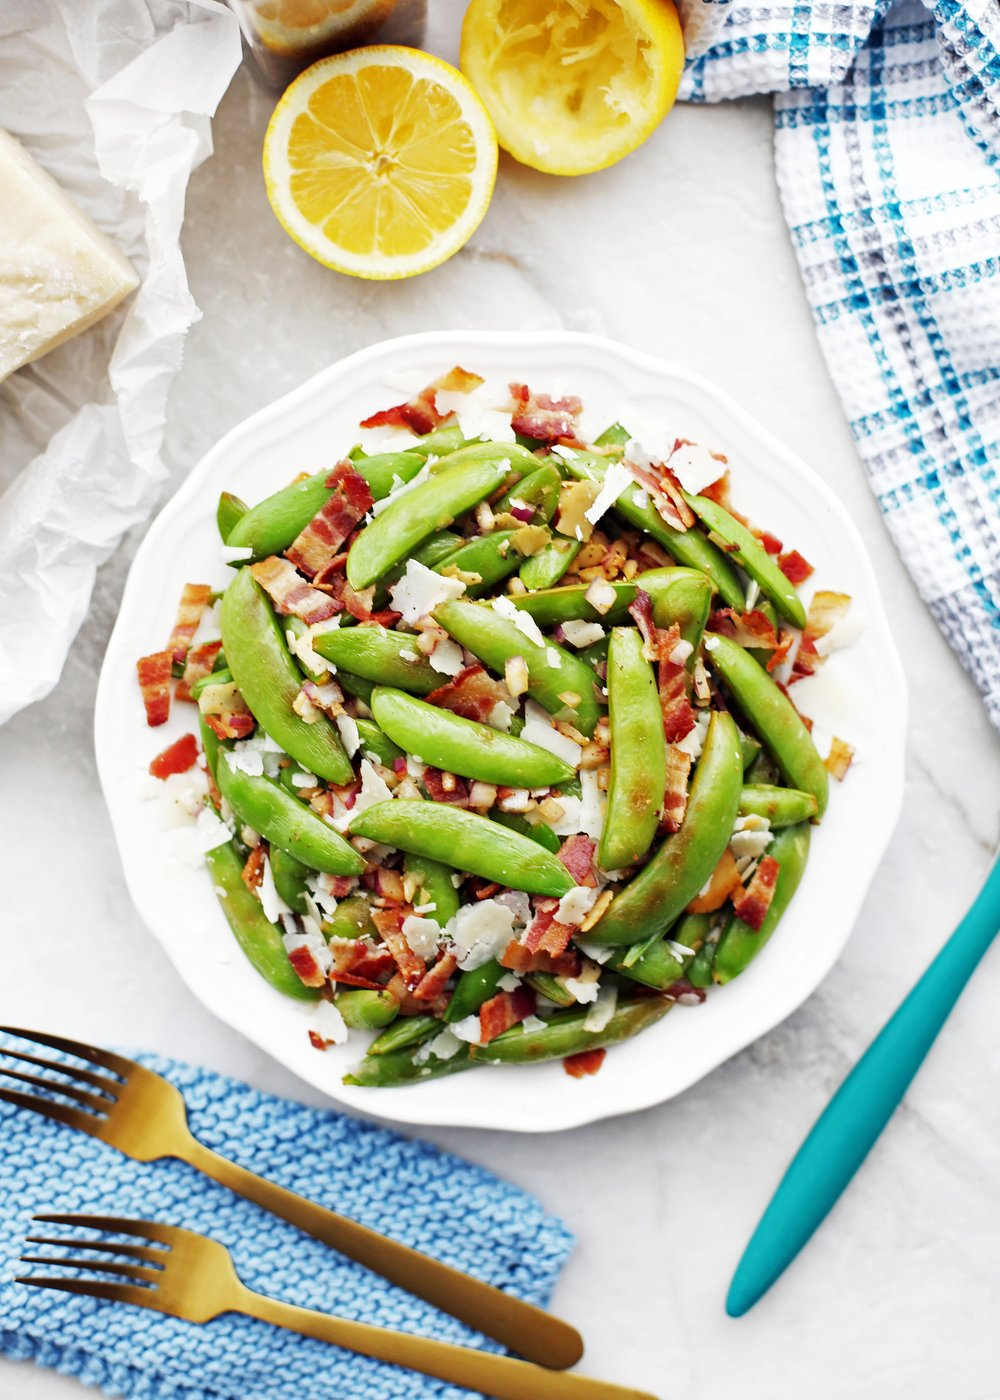 Sugar snap peas with bacon and parmesan on a white plate.